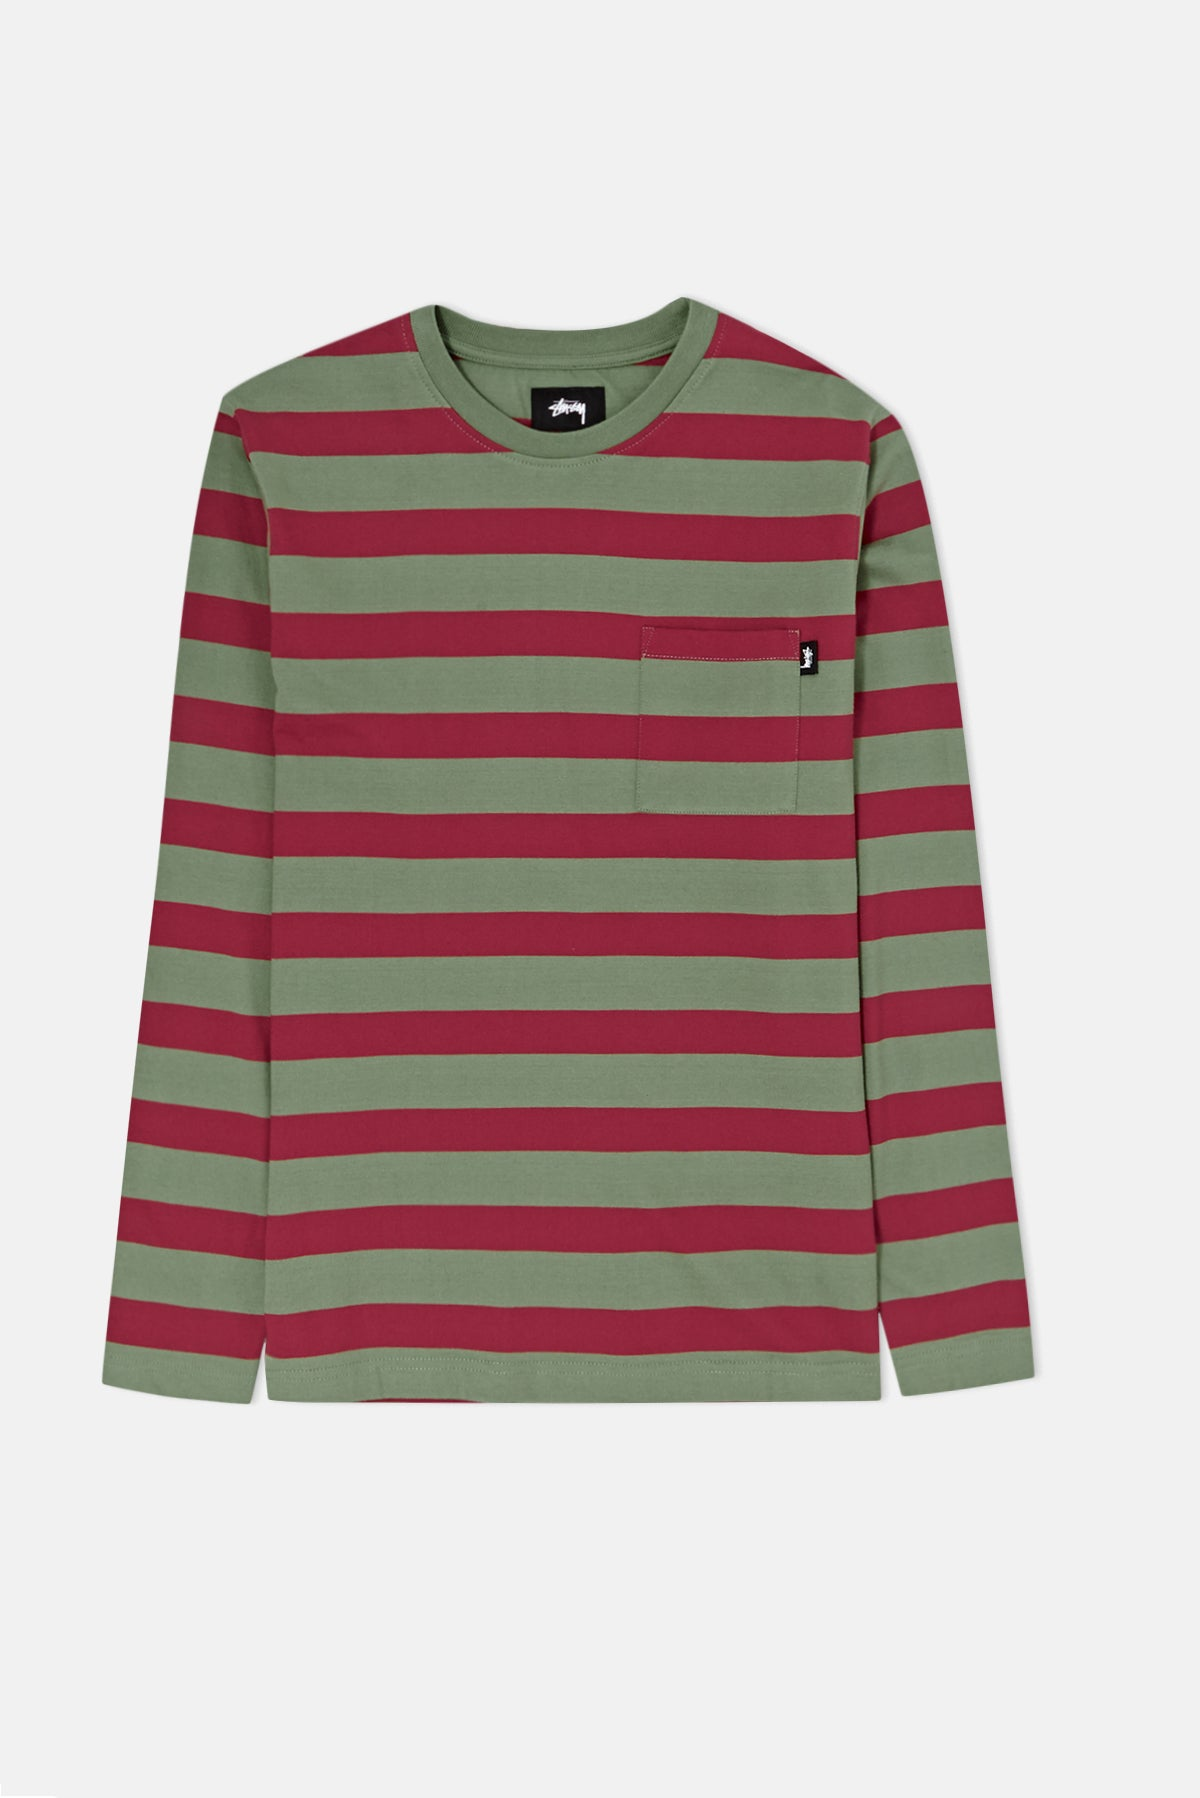 0734d97133 Stussy Malcom Stripe Crew Sweatshirt available from Priory